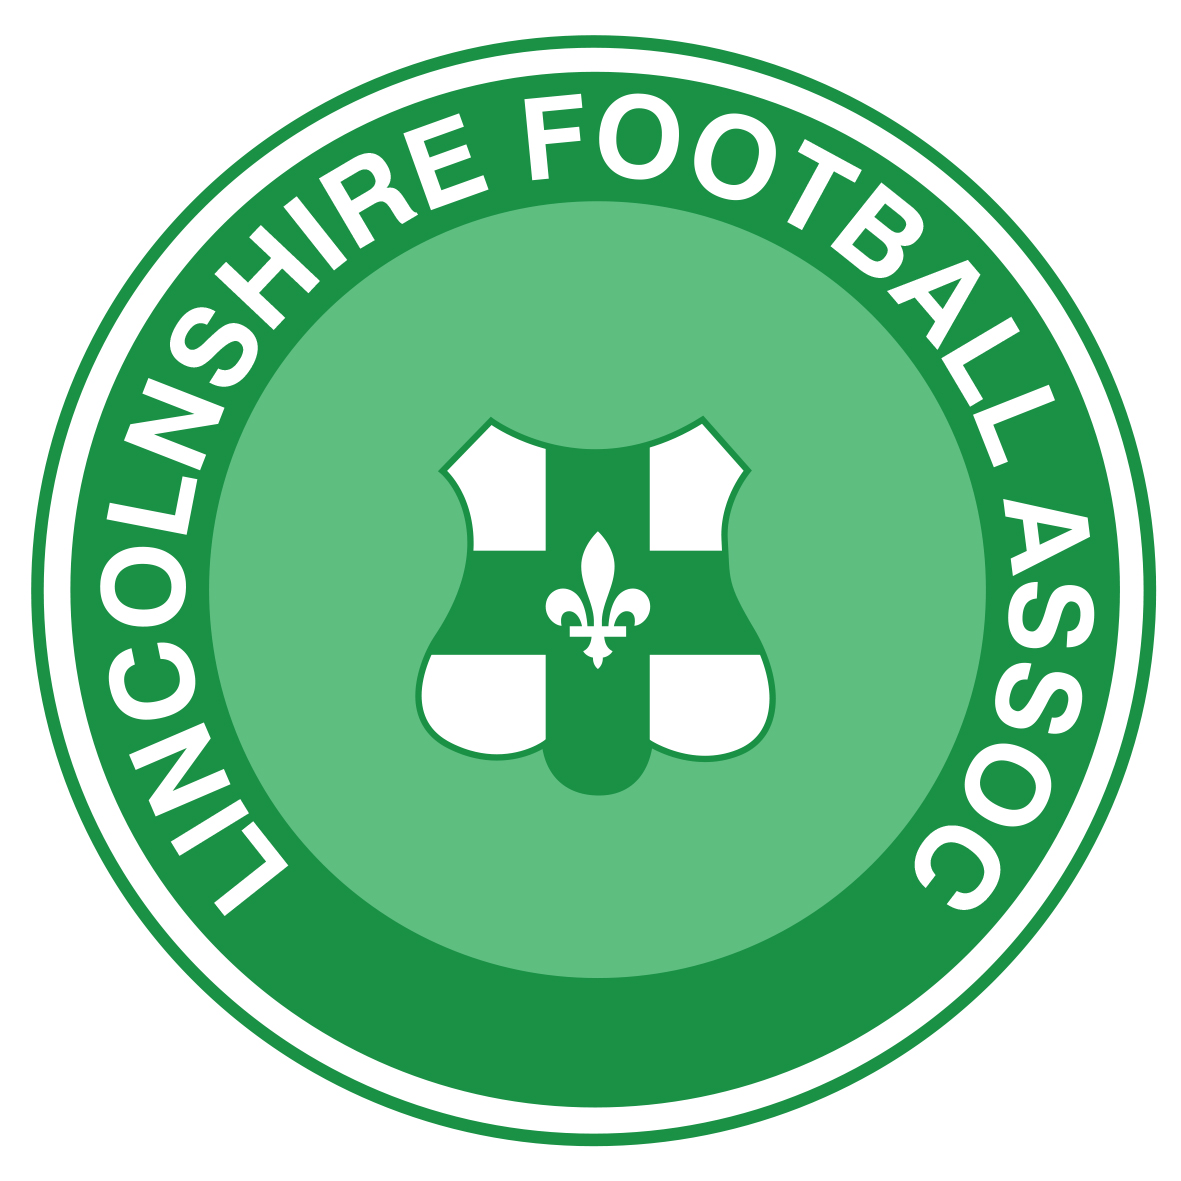 Lincolnshire County Football Association